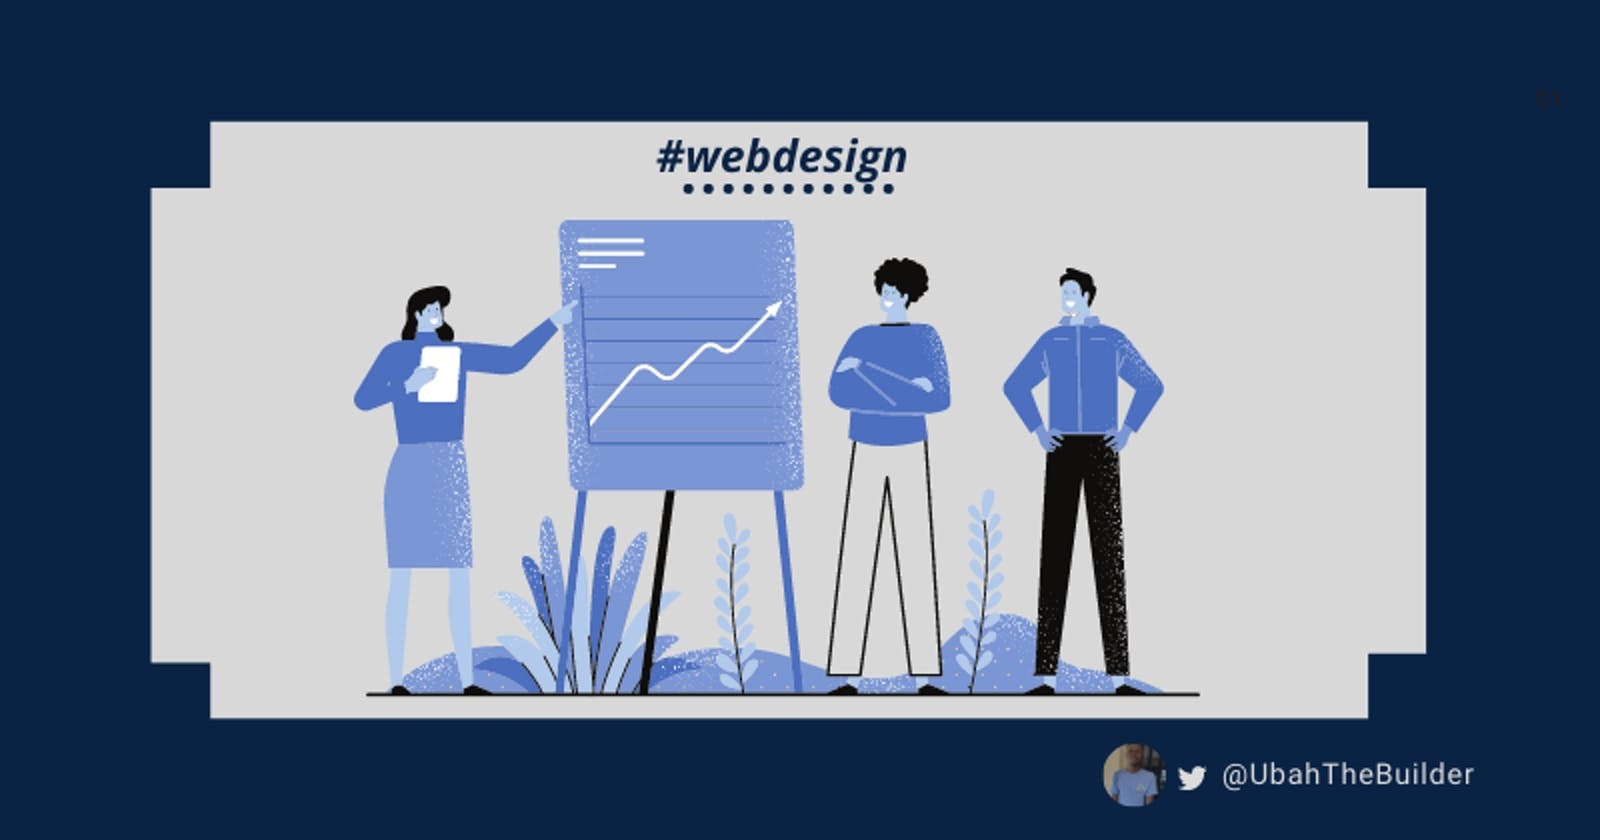 5 Awesome Websites to Download Free Vector Illustrations